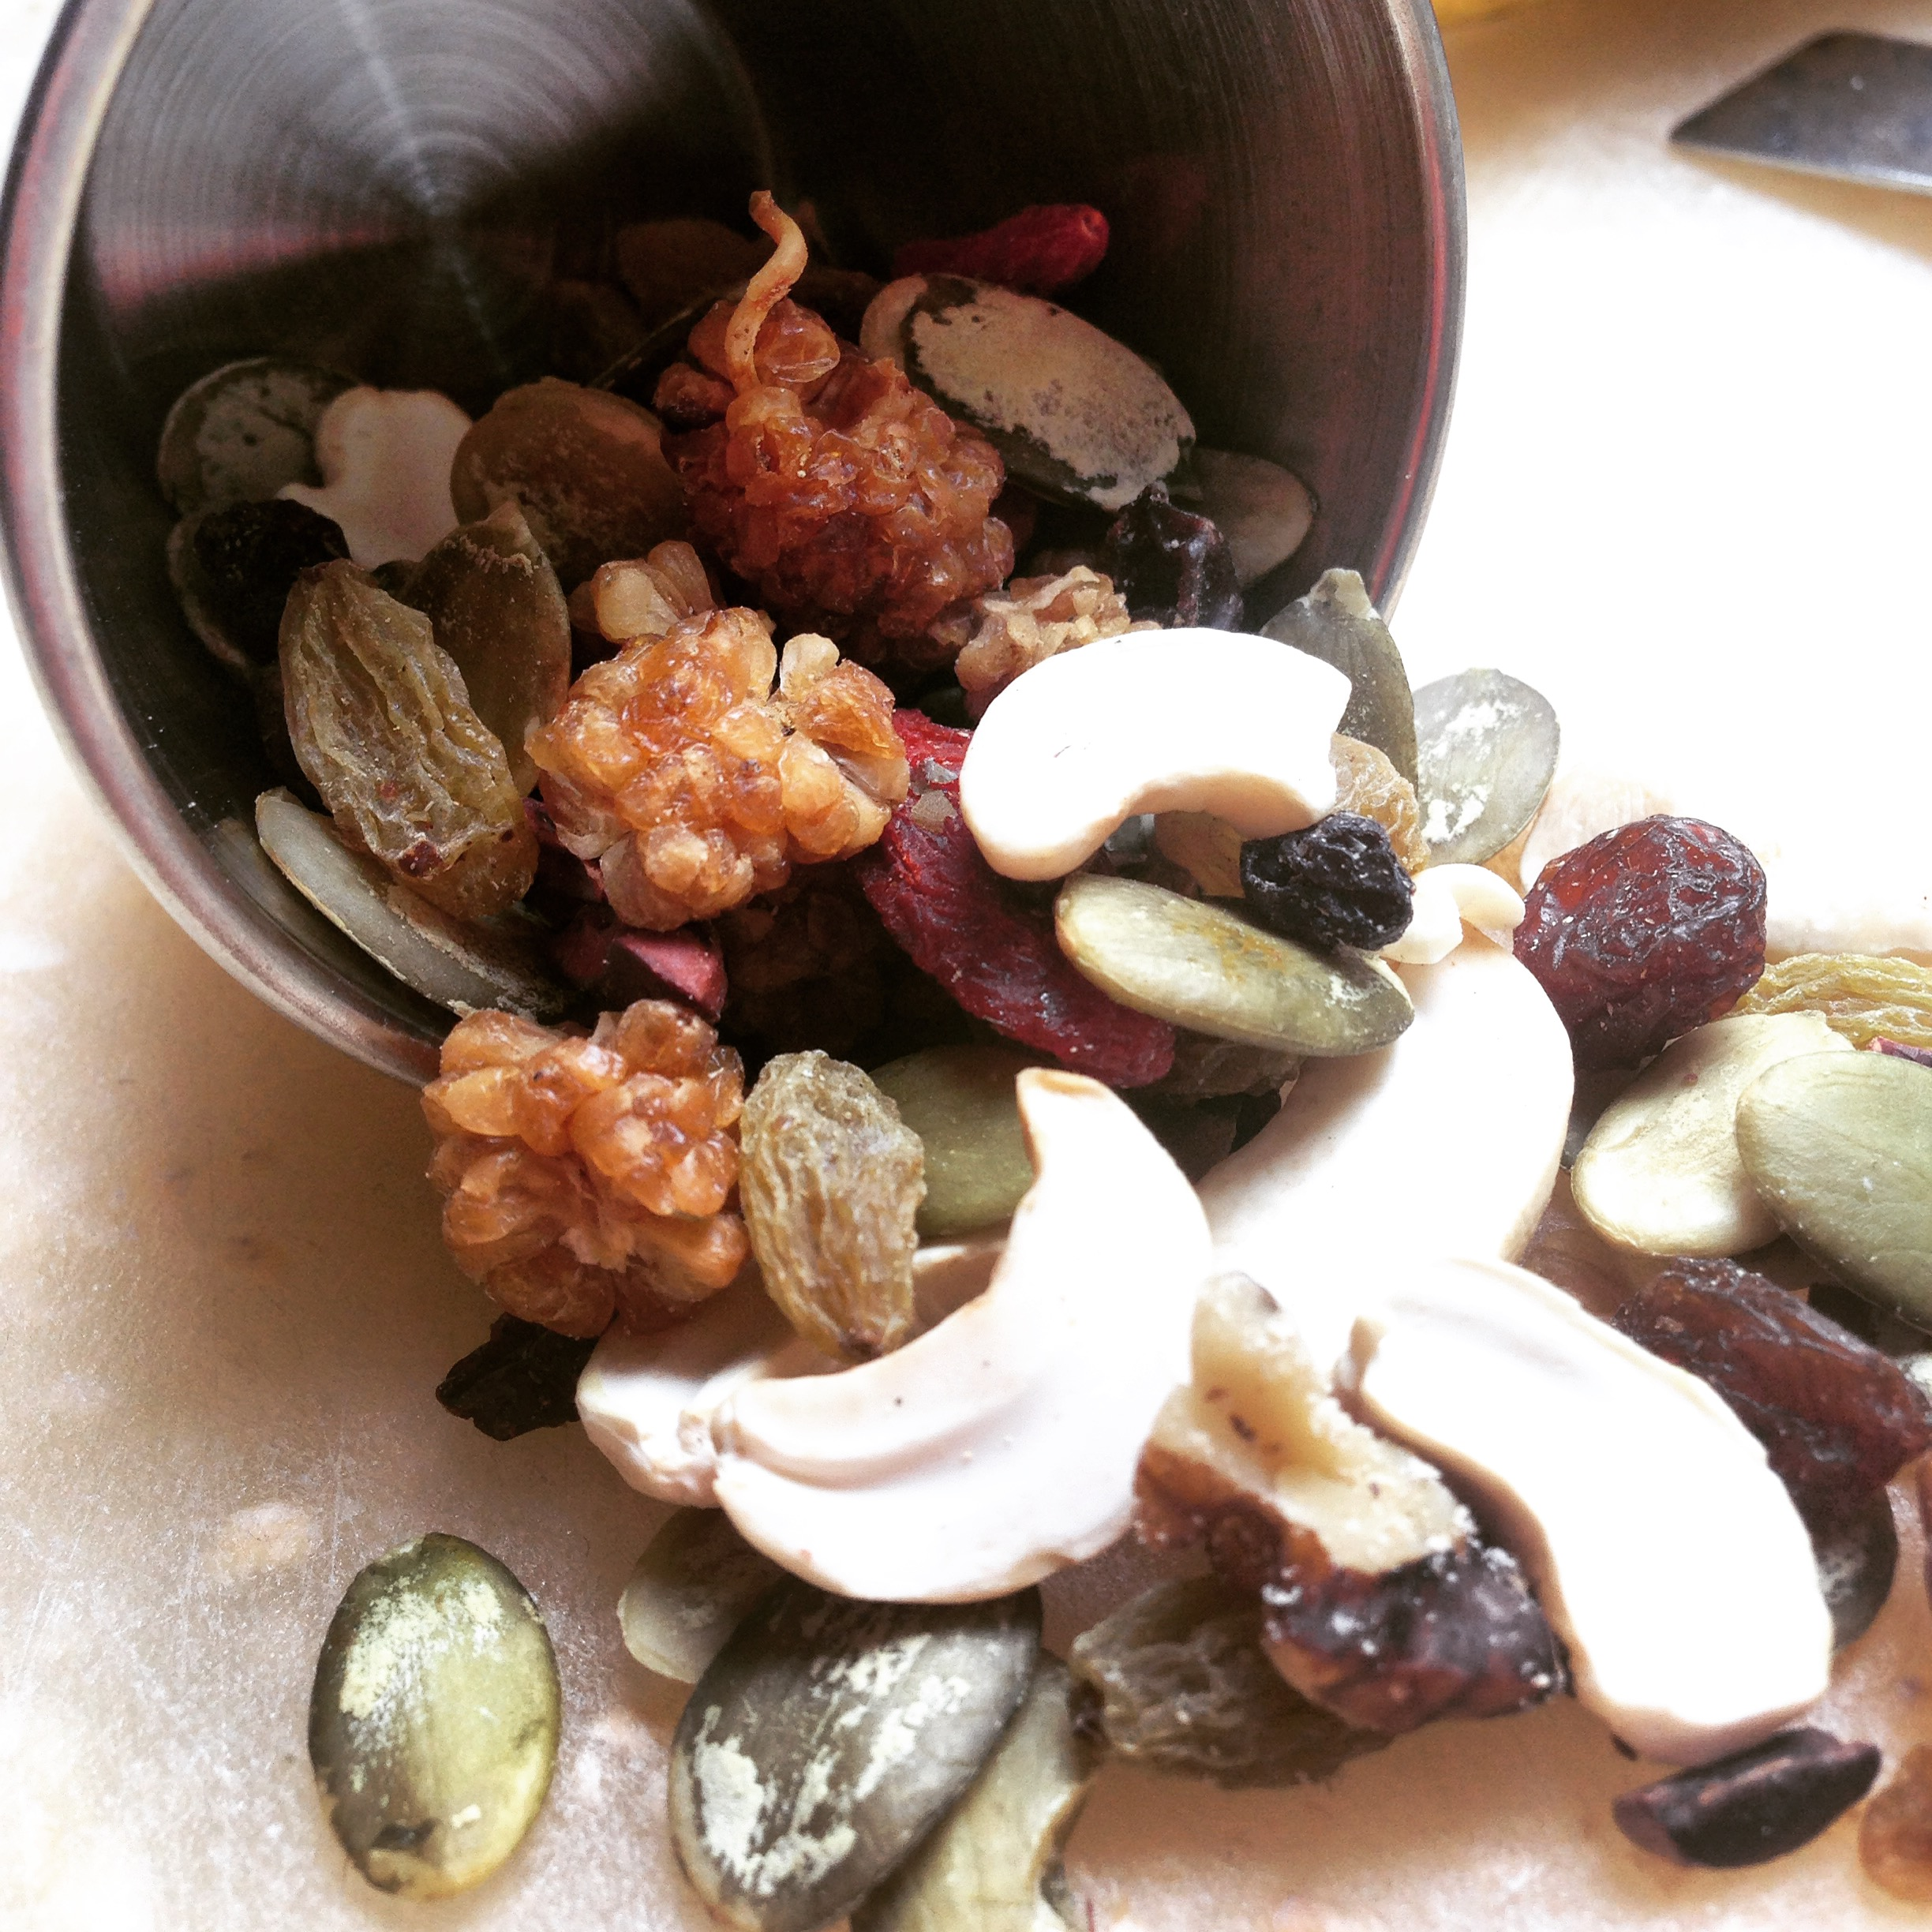 Superfood trail mix is a great food to reduce stress and promote feelings of happiness due to the satisfying crunch of the snack as well as the vitaminand mineral content that seeds, nuts and berries possess.